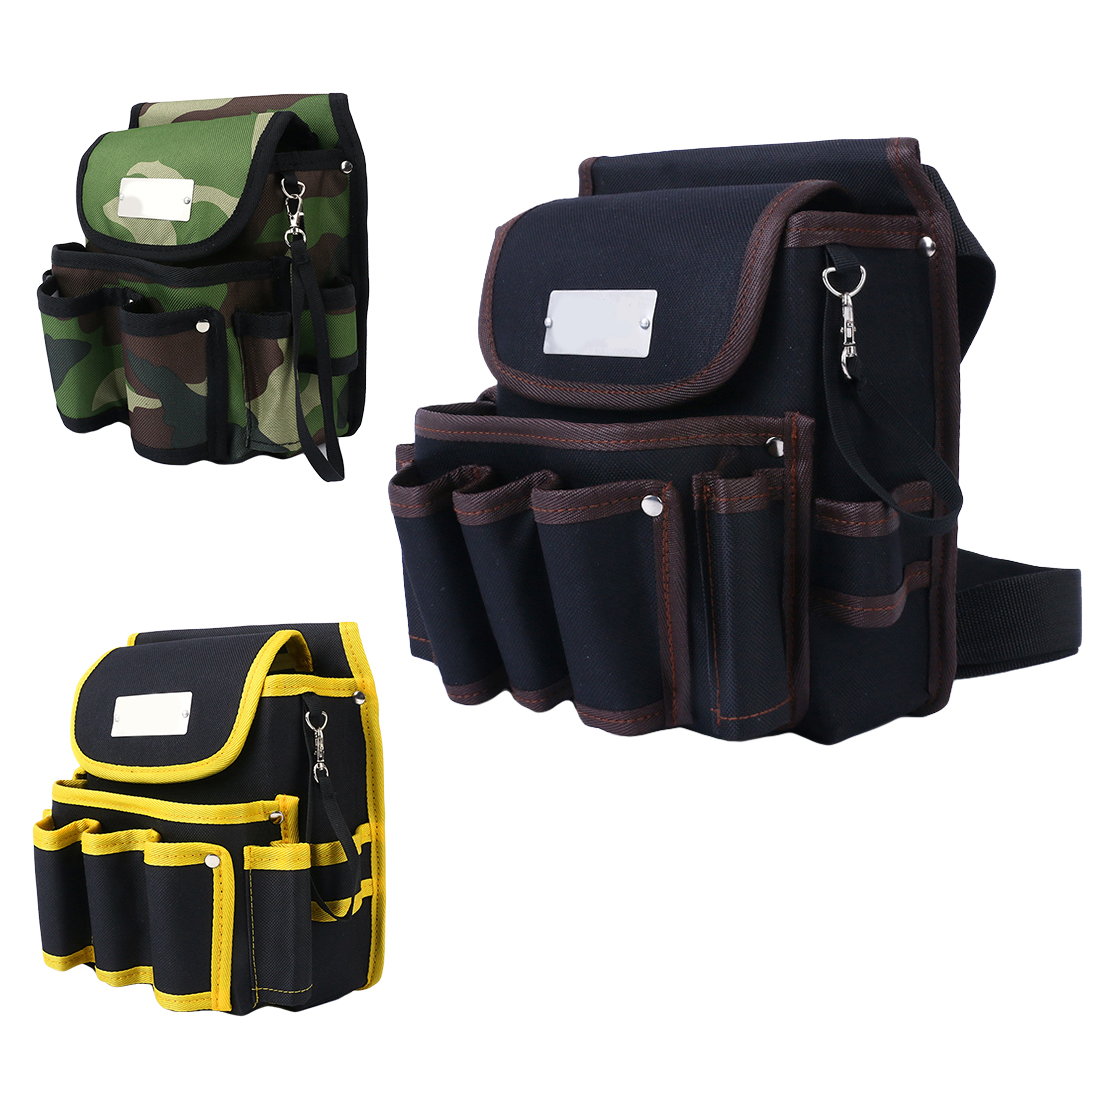 600D Water Proof Cloth Rivet Fixed Tool Bag Belt Utility Kit Pocket Pouch Telecommunications Holder Electrician